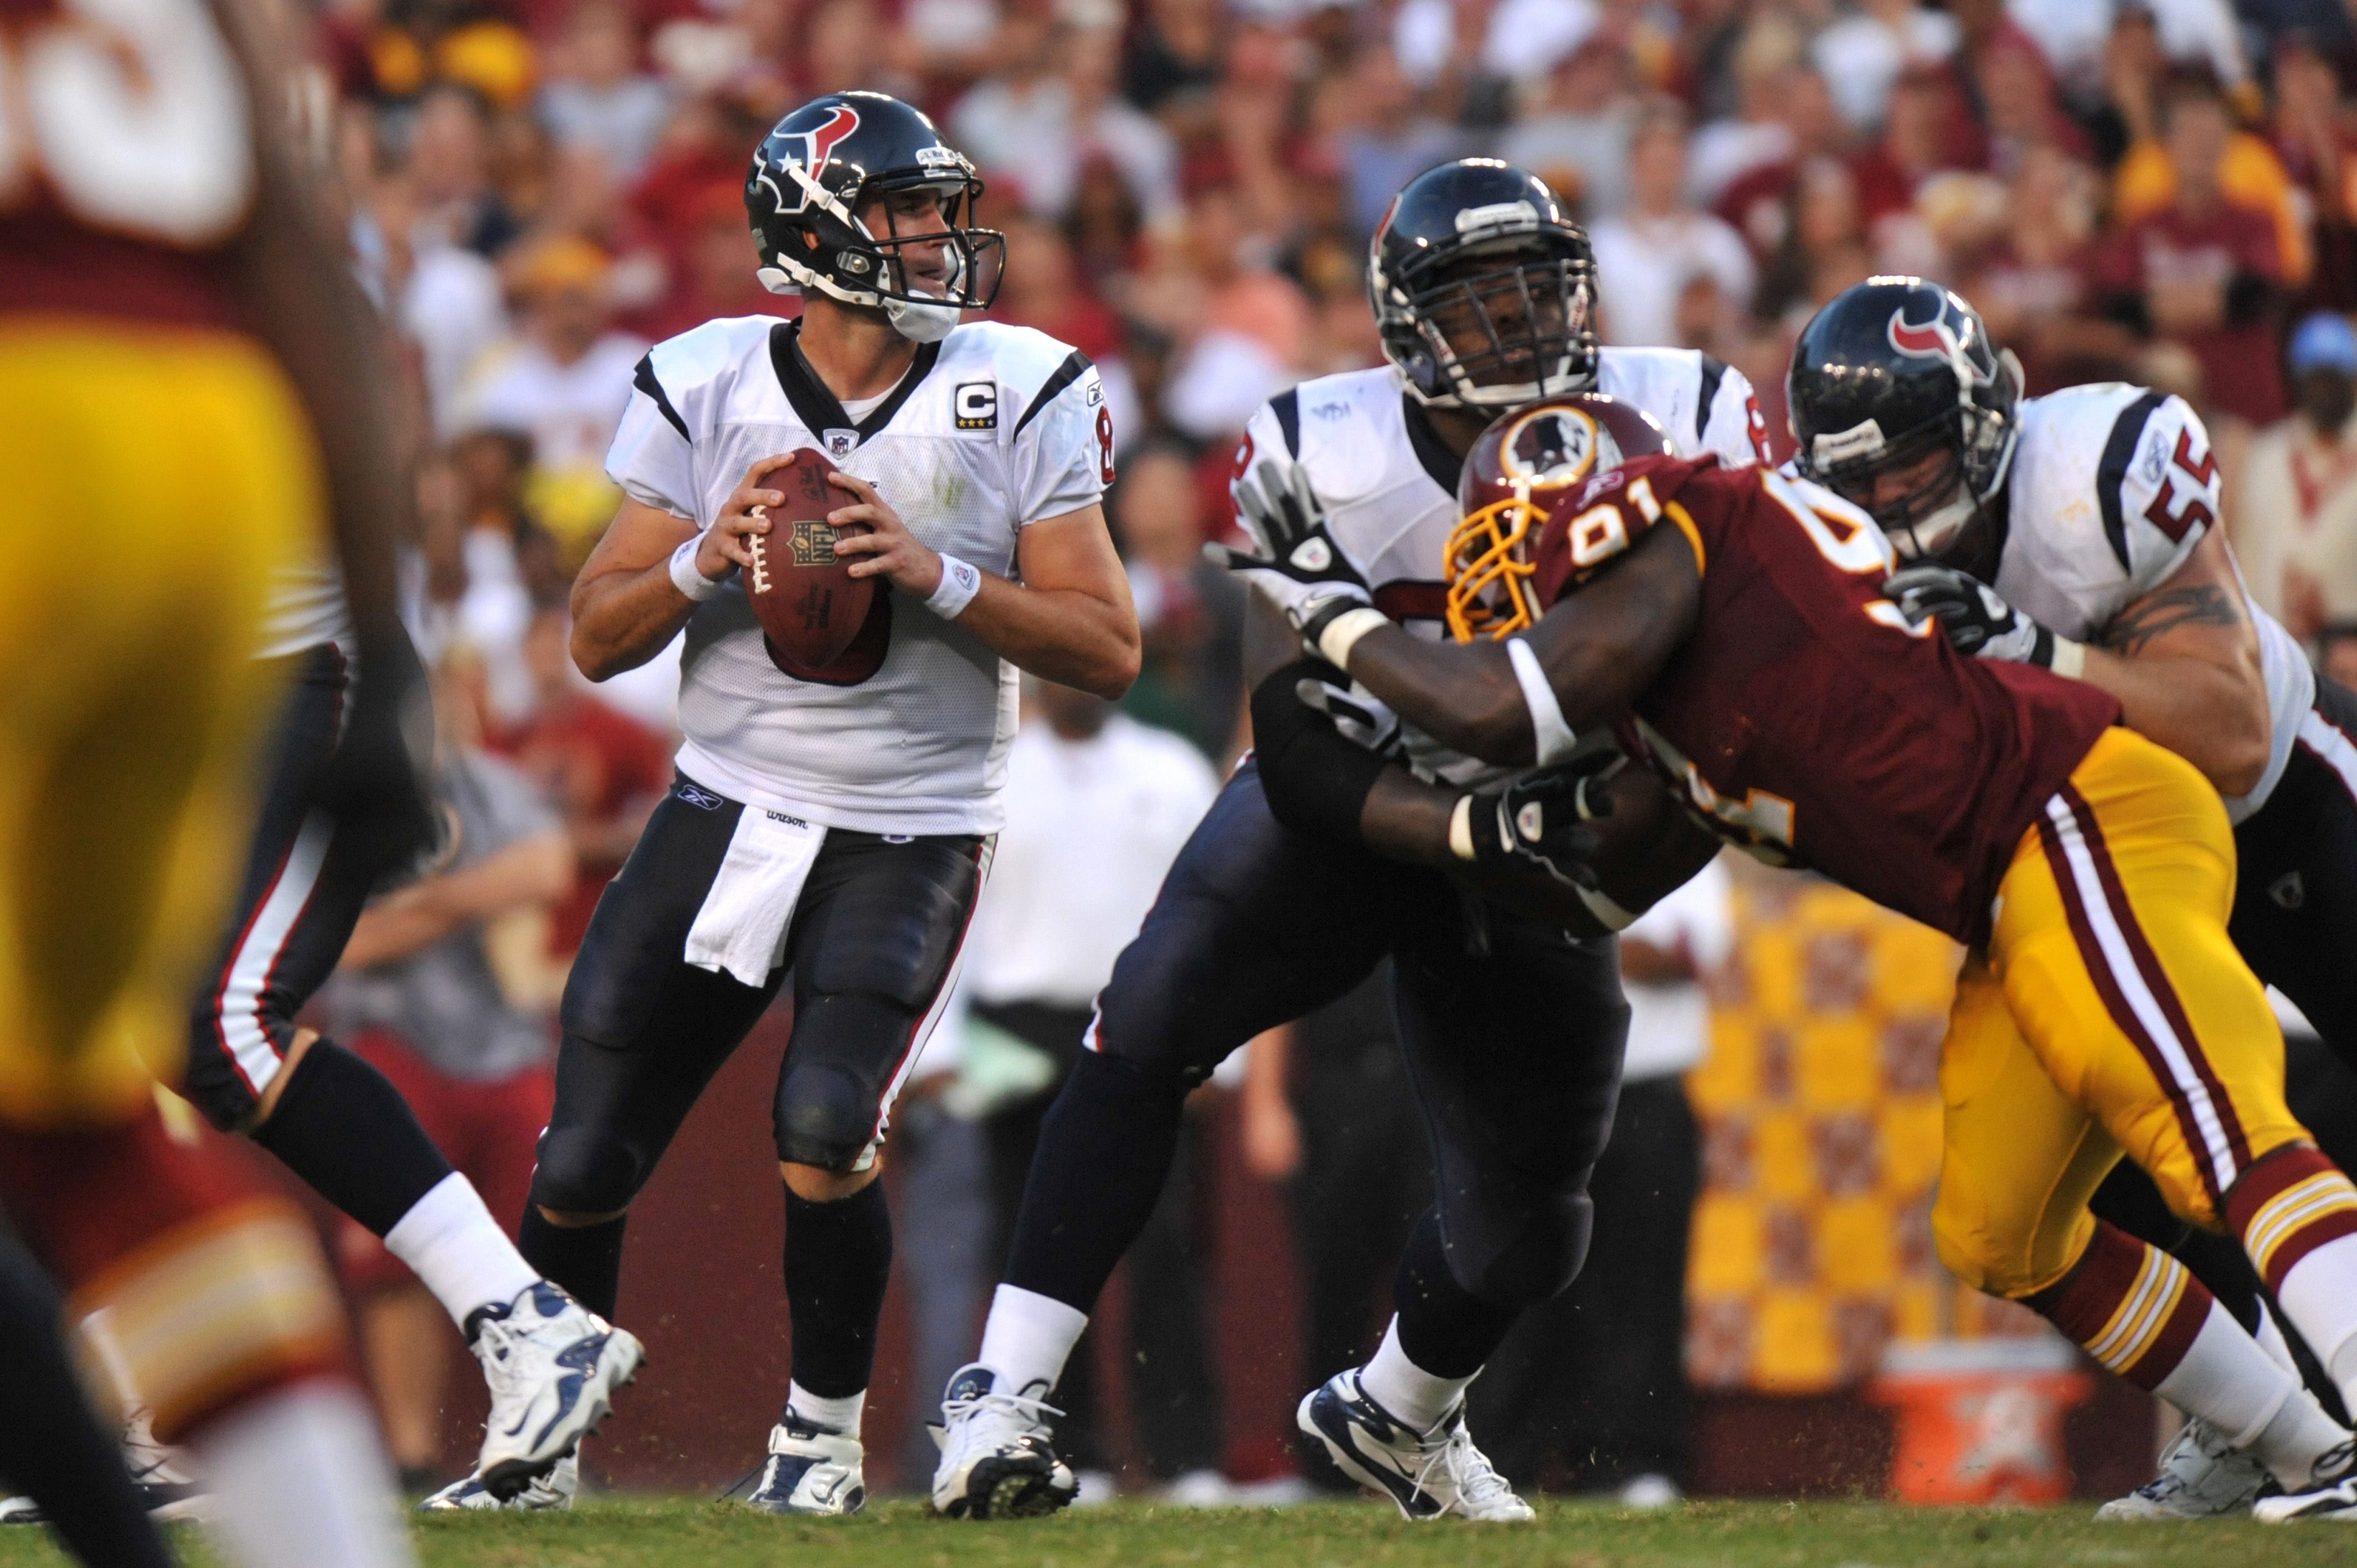 LANDOVER - SEPTEMBER 19:  Matt Schaub # of the Houston Texans looks for a receiver during the game against the Washington Redskins at FedExField on September 19, 2010 in Landover, Maryland. The Texans defeated the Redskins 30-27 in overtime. (Photo by Lar